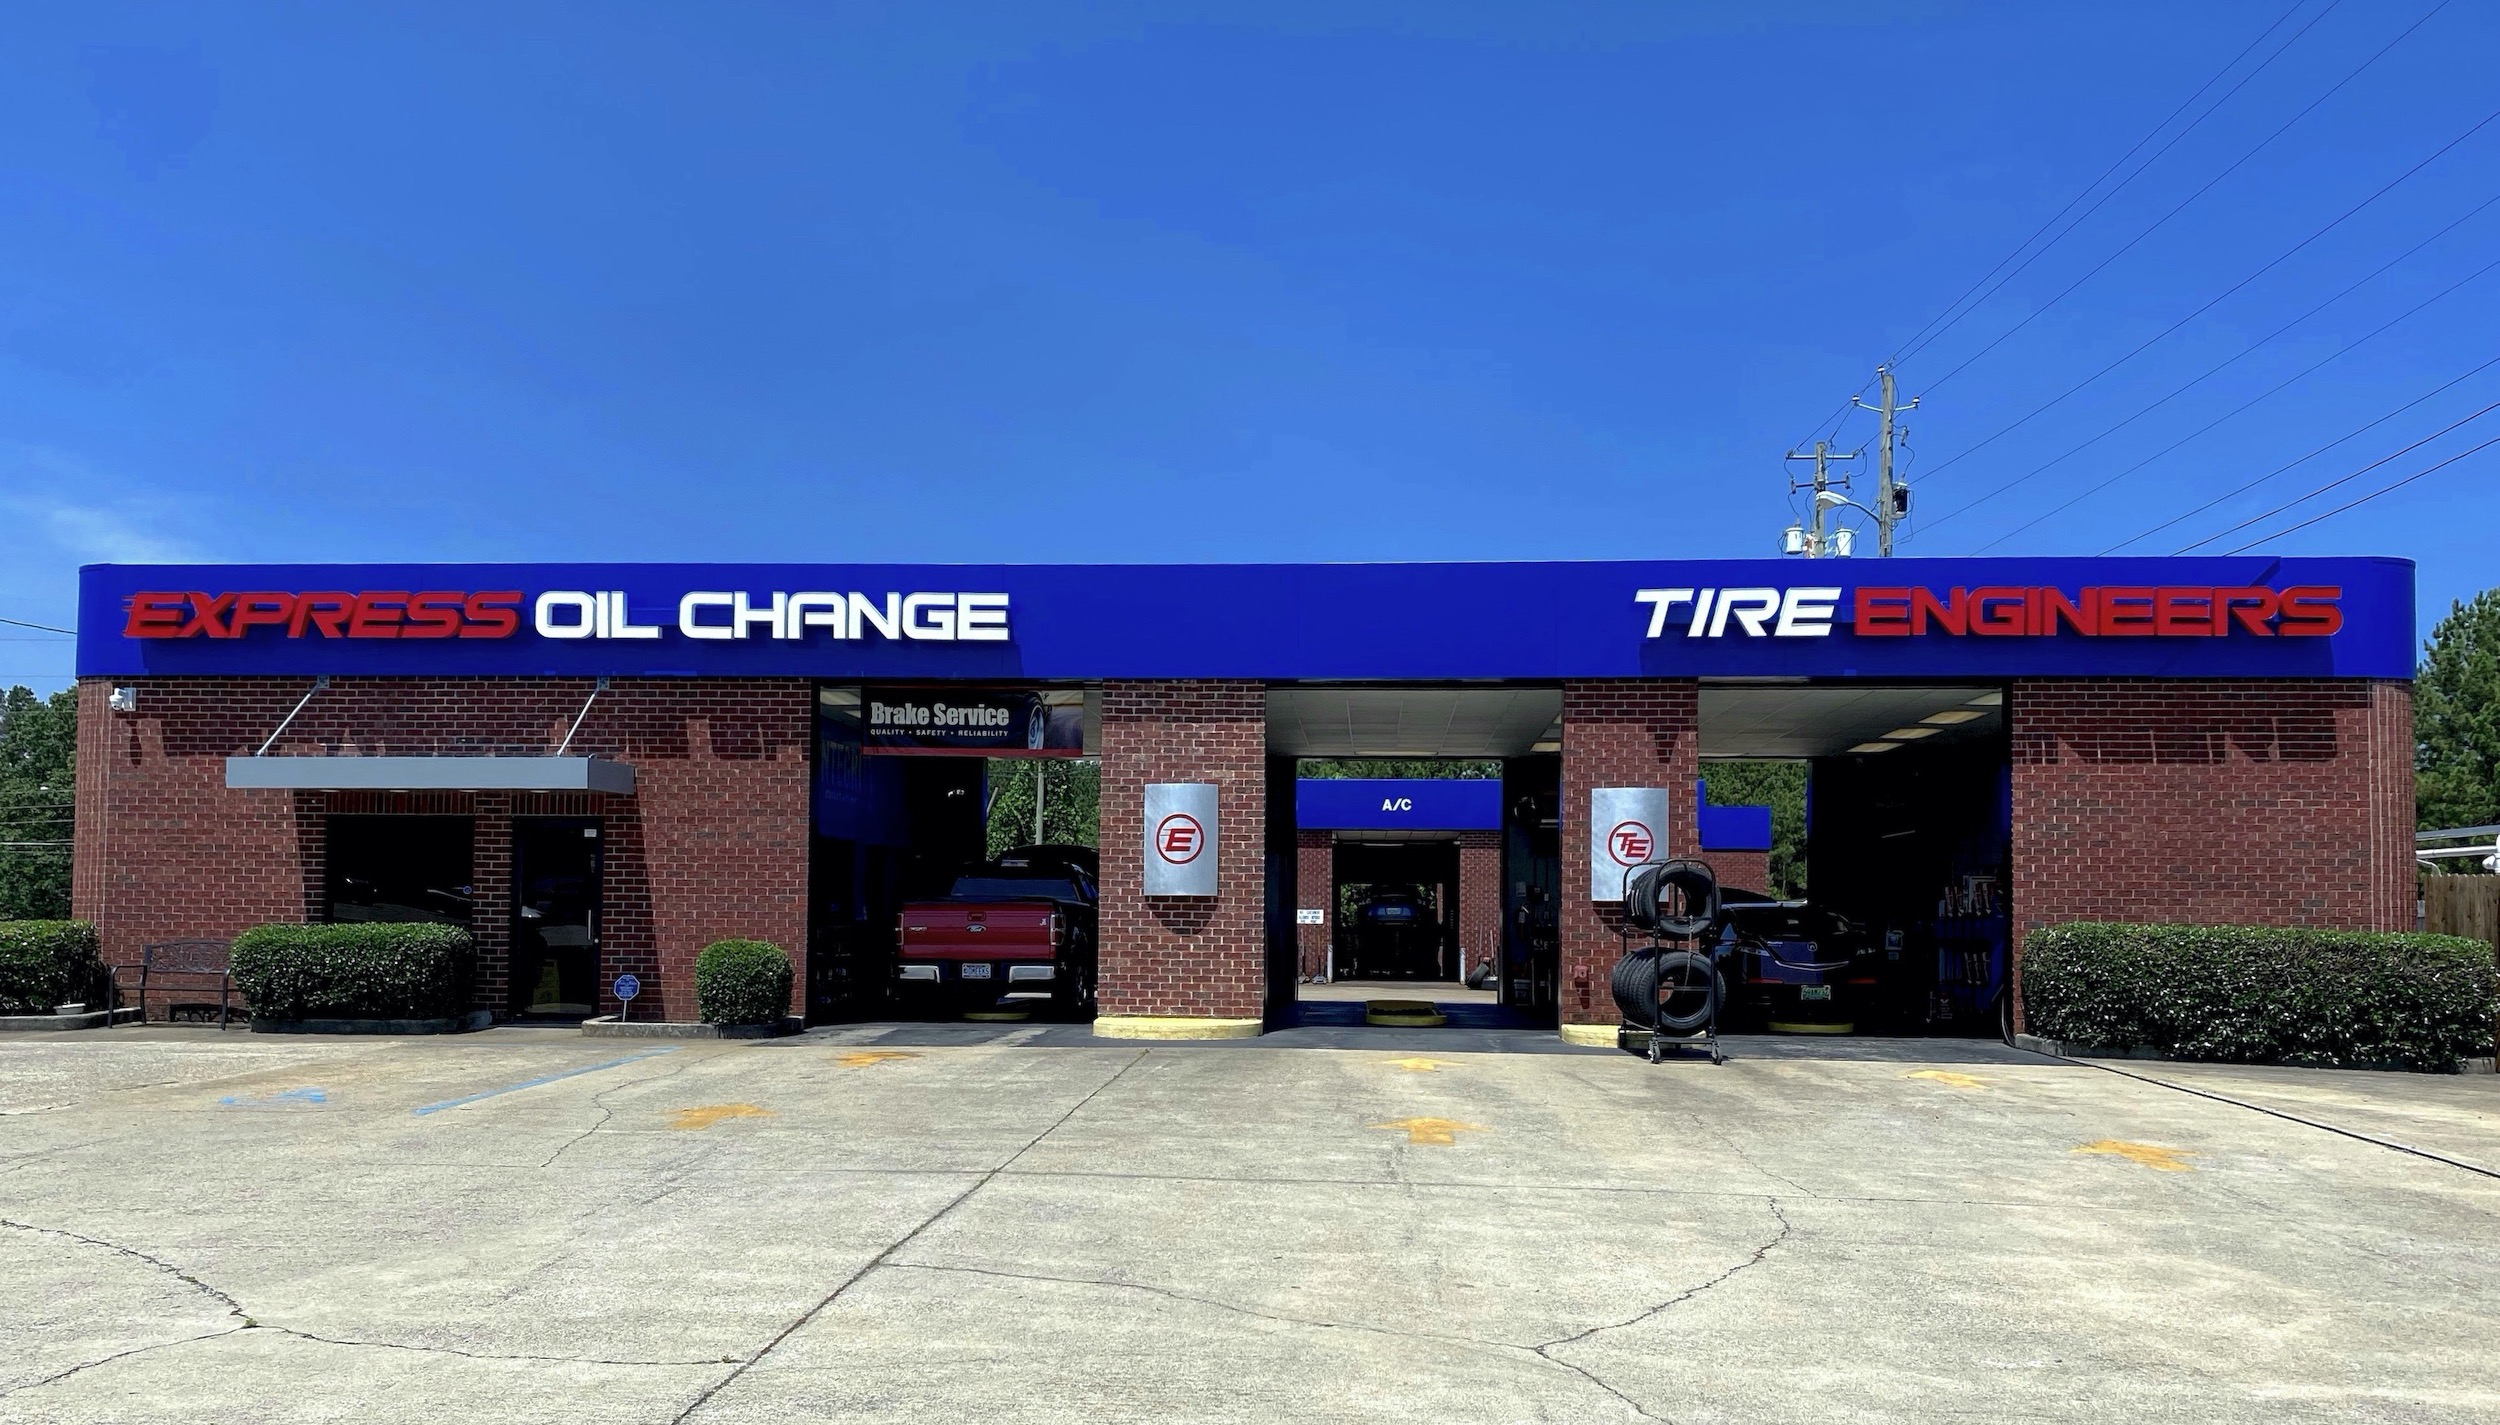 Express Oil Change & Tire Engineers Pell City, AL - Cropwell store